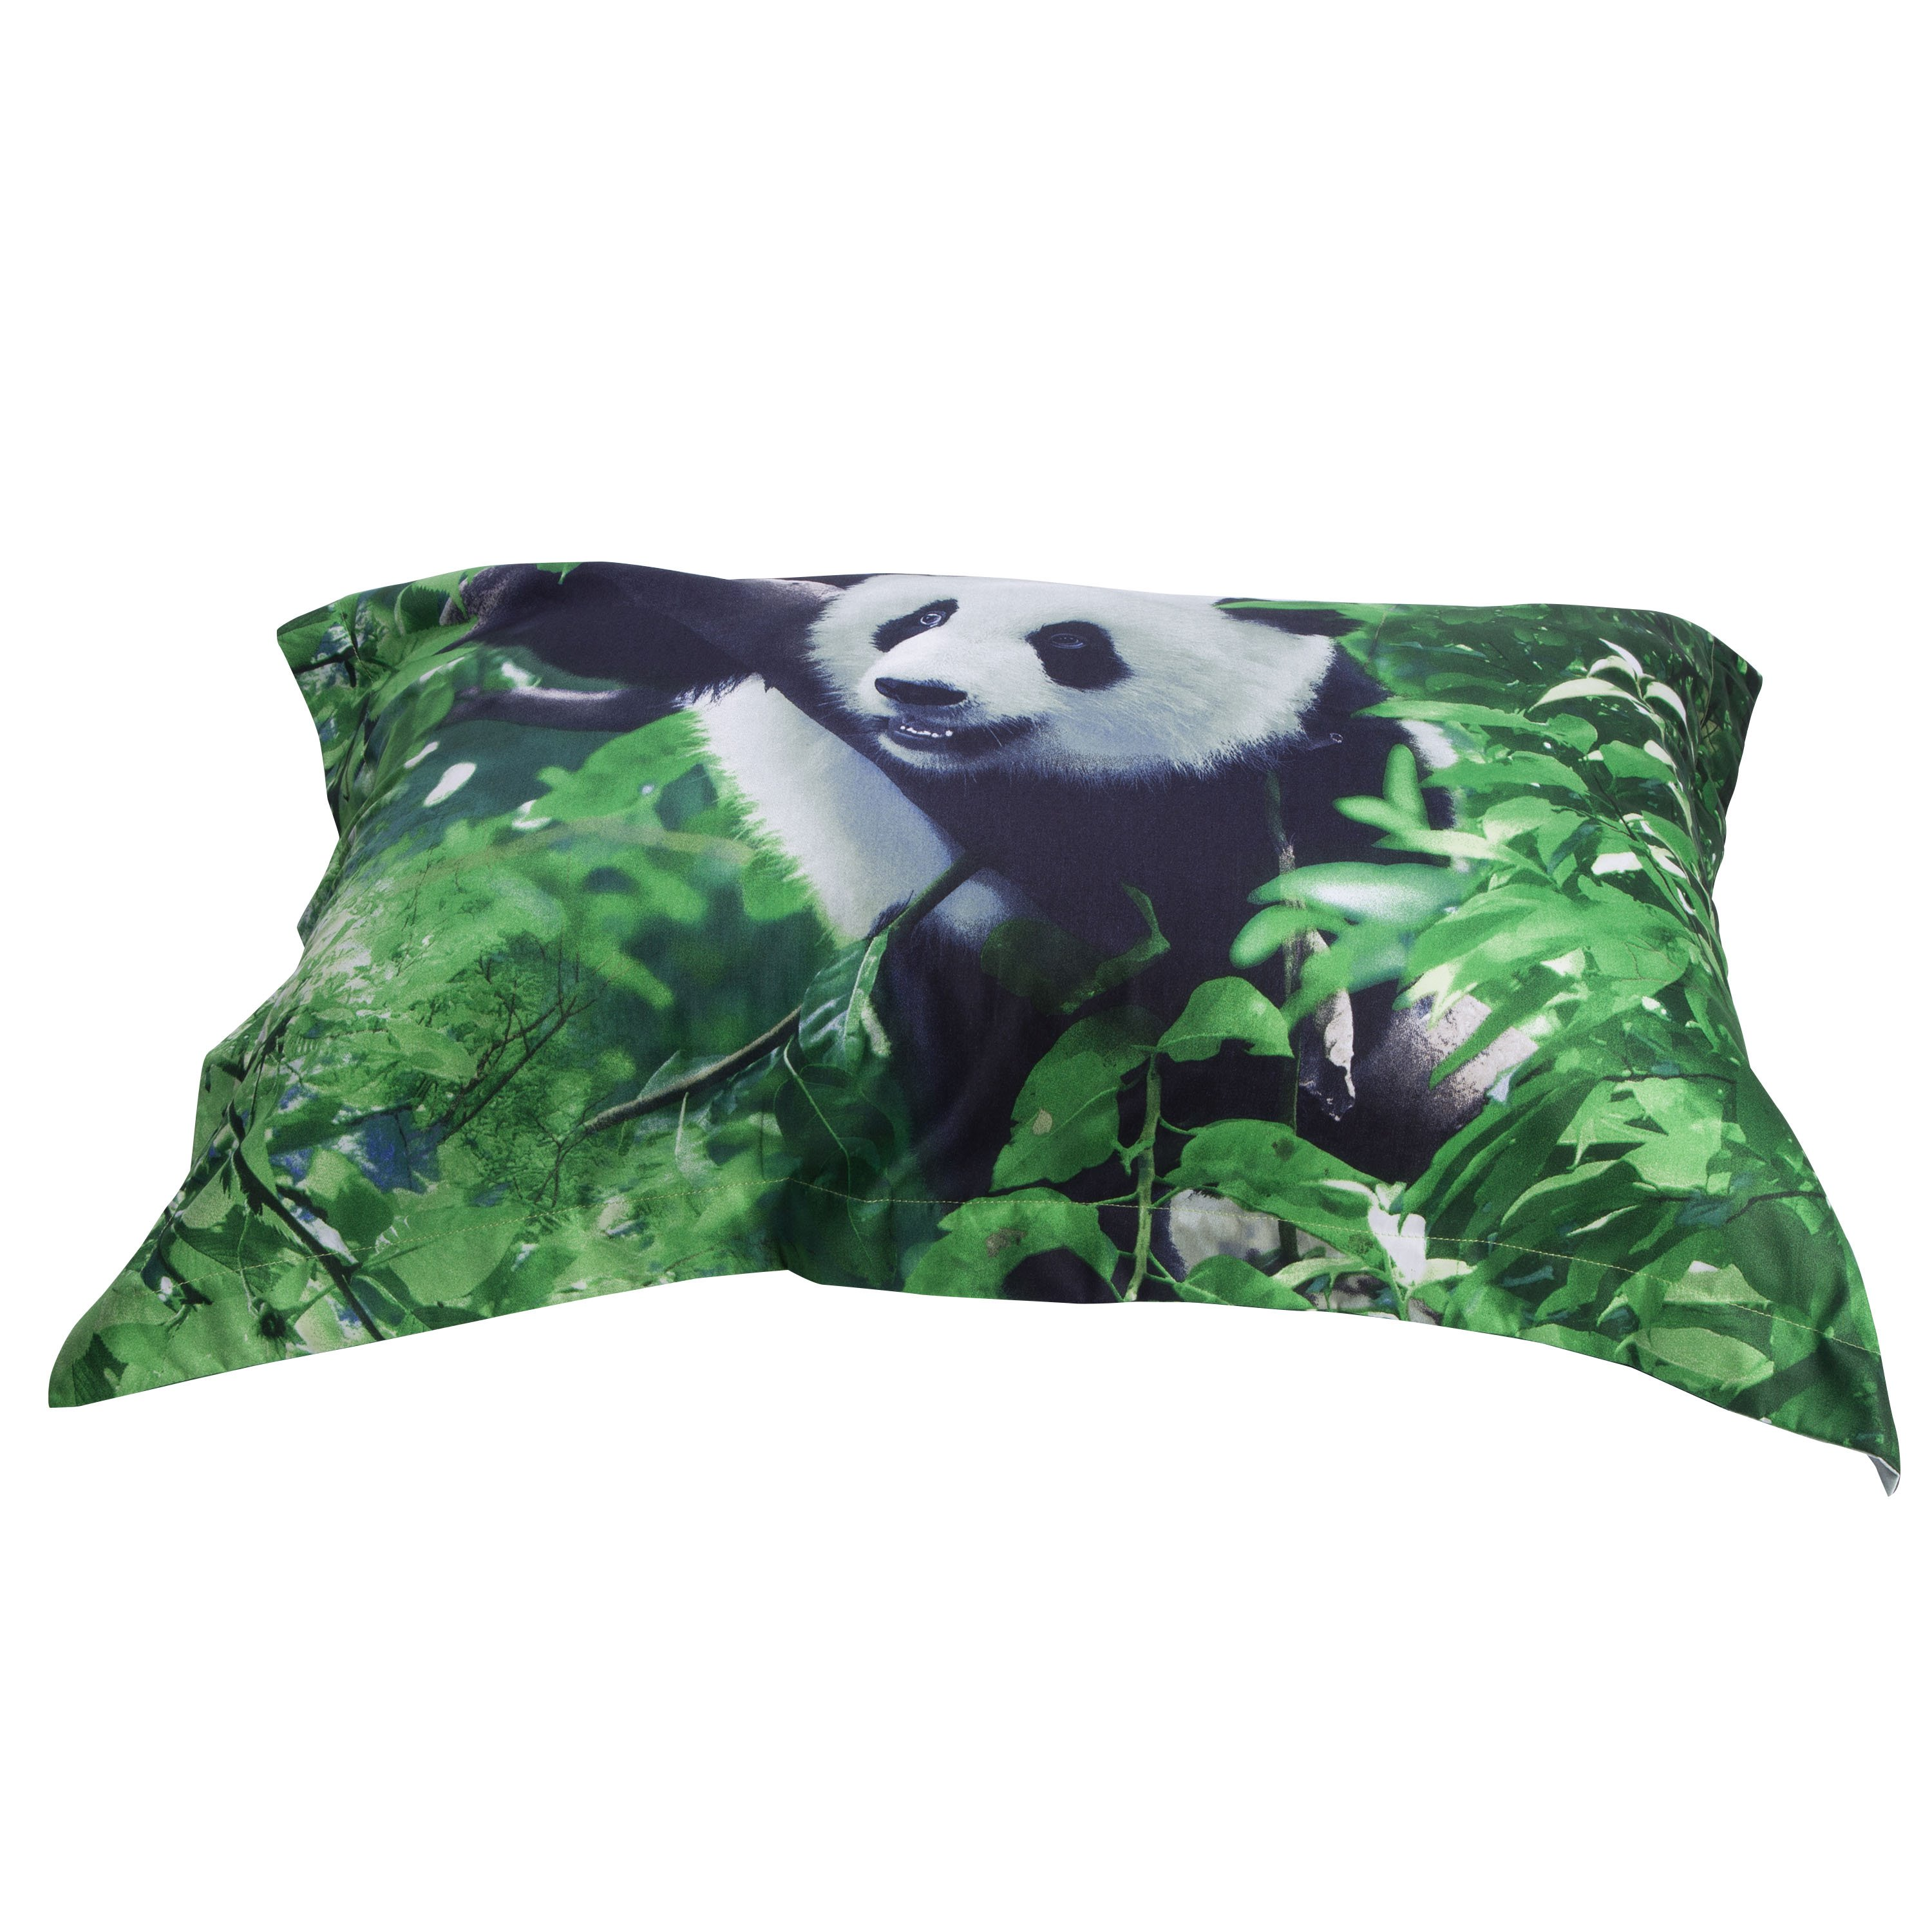 3D Panda Climbing Tree Printed Cotton 4-Piece Green Bedding Sets/Duvet Covers